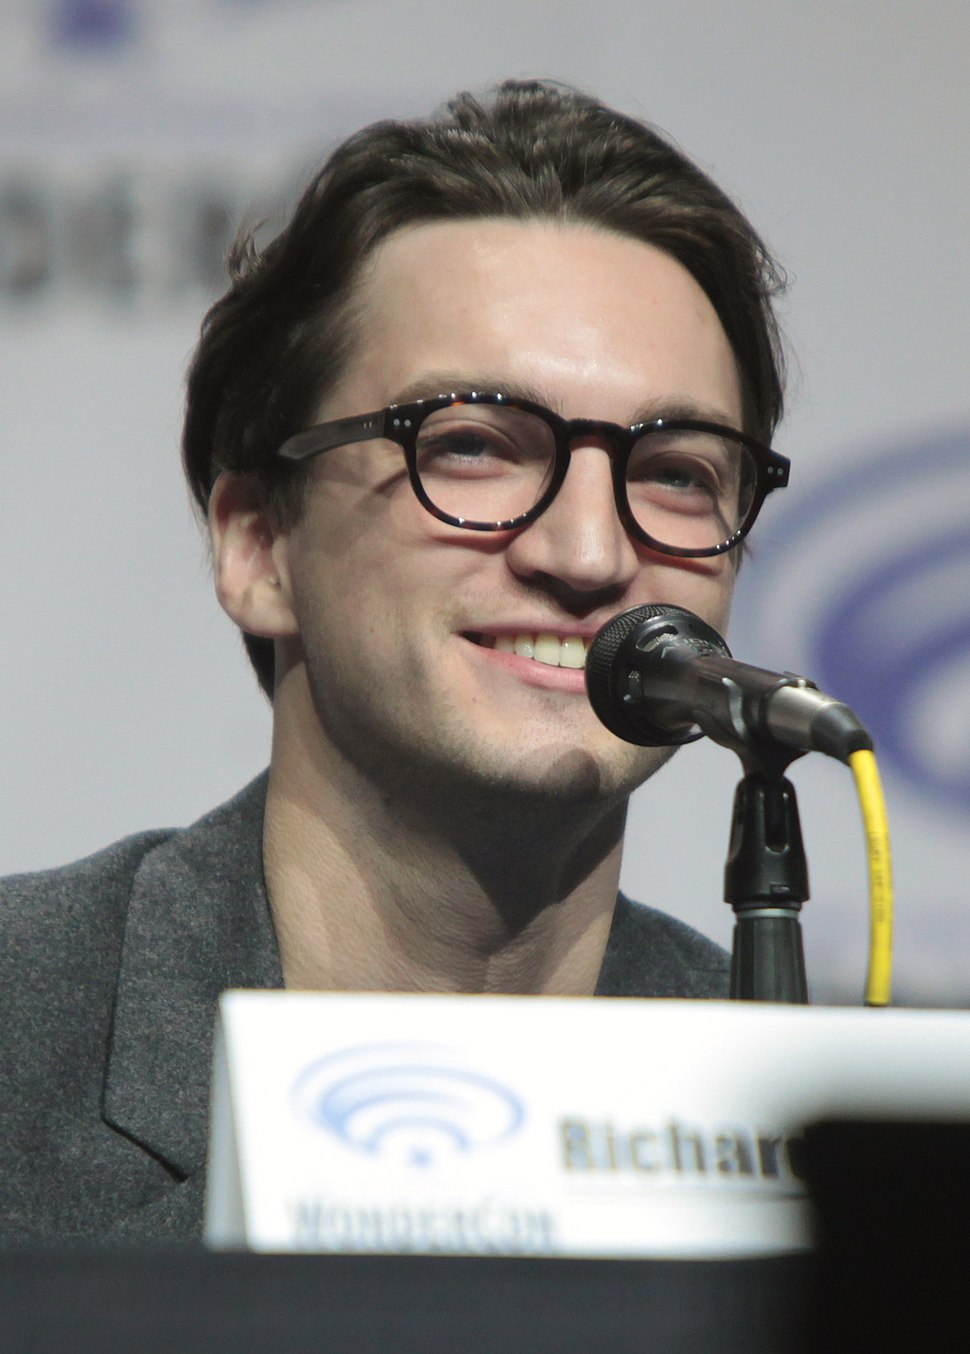 Richard Harmon Wondercon 2016